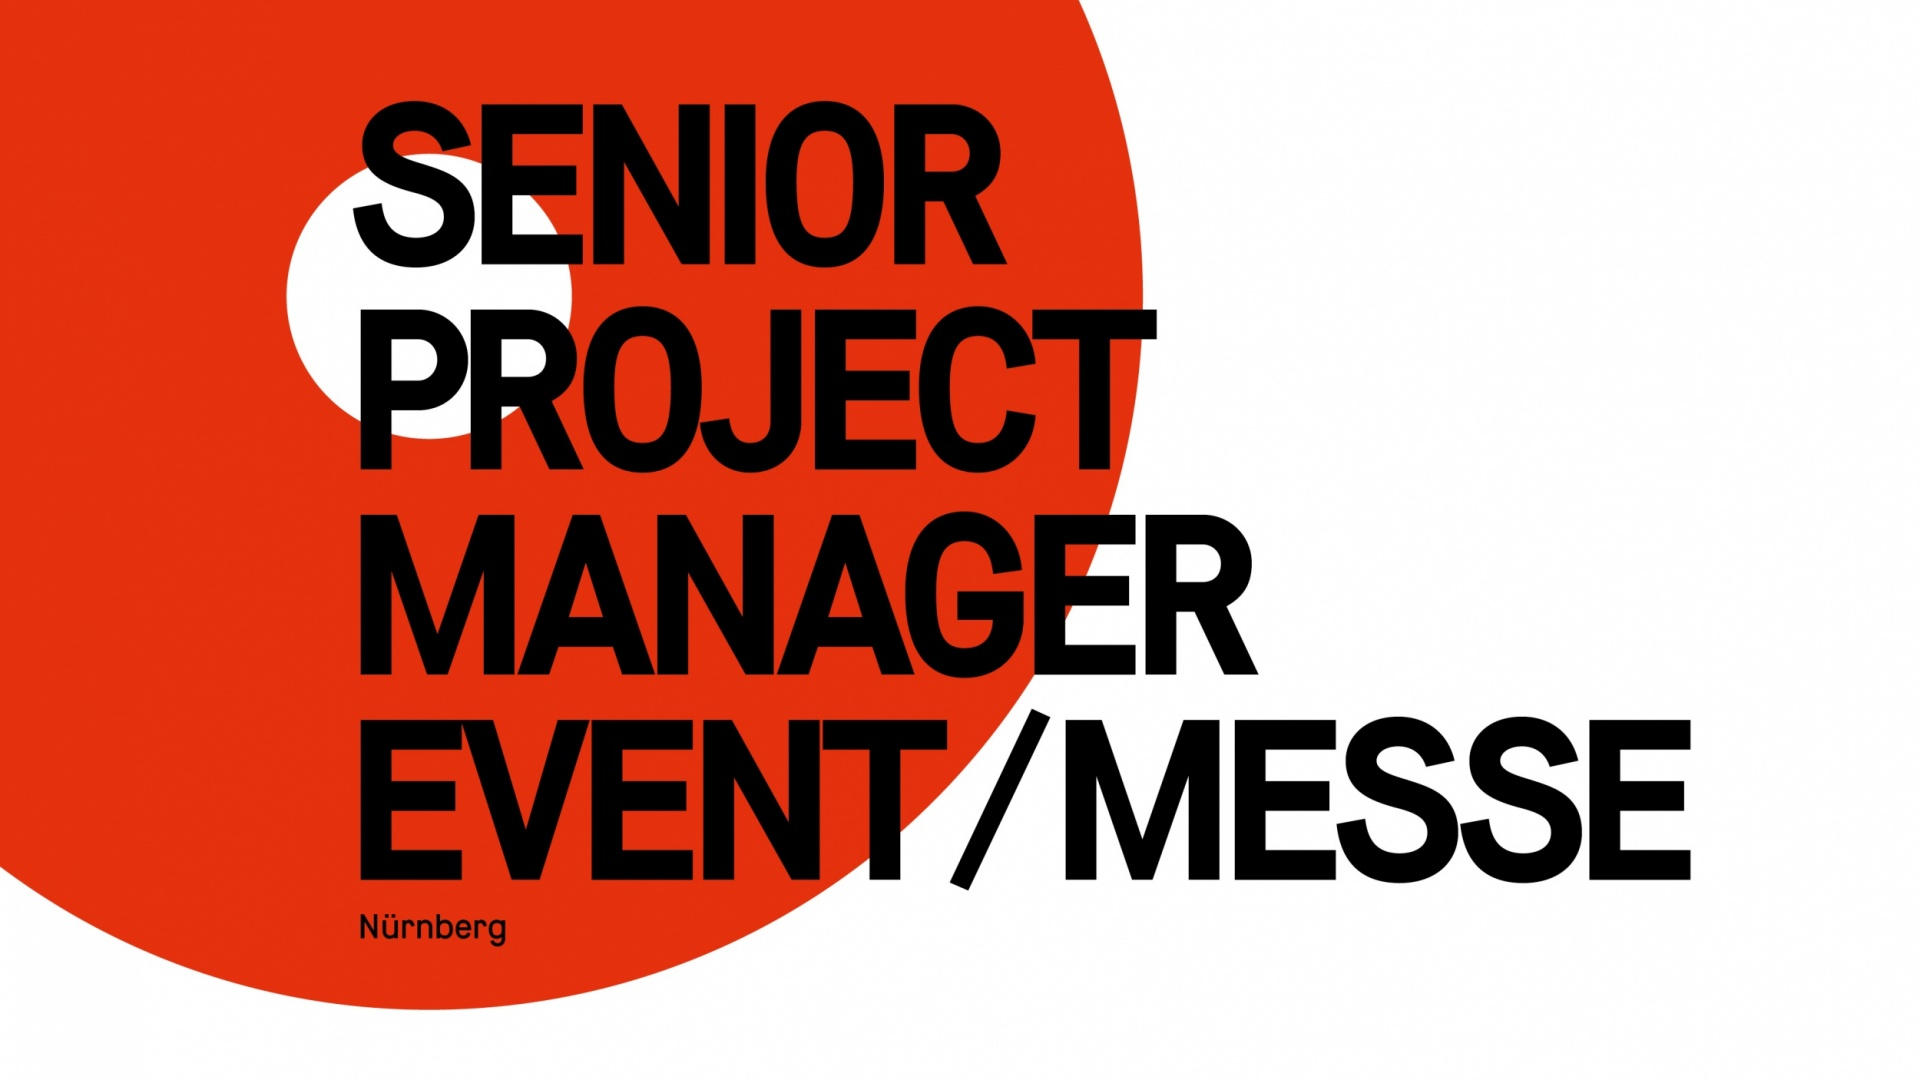 Senior Project Manager Event/Messe (m/w)